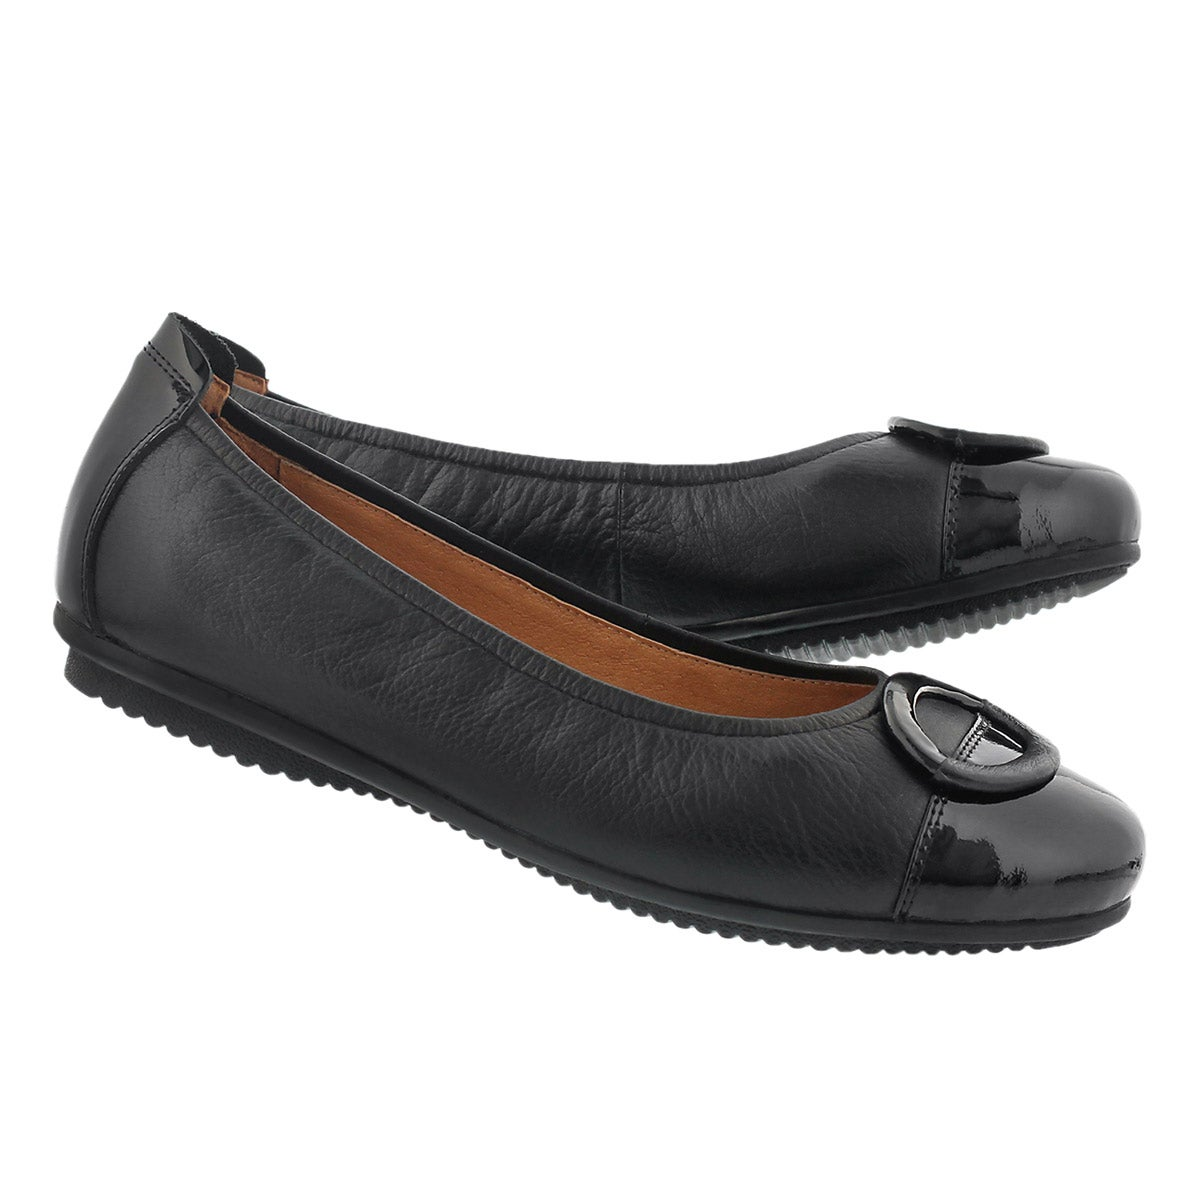 Lds Pippa 19 black leather dress flat